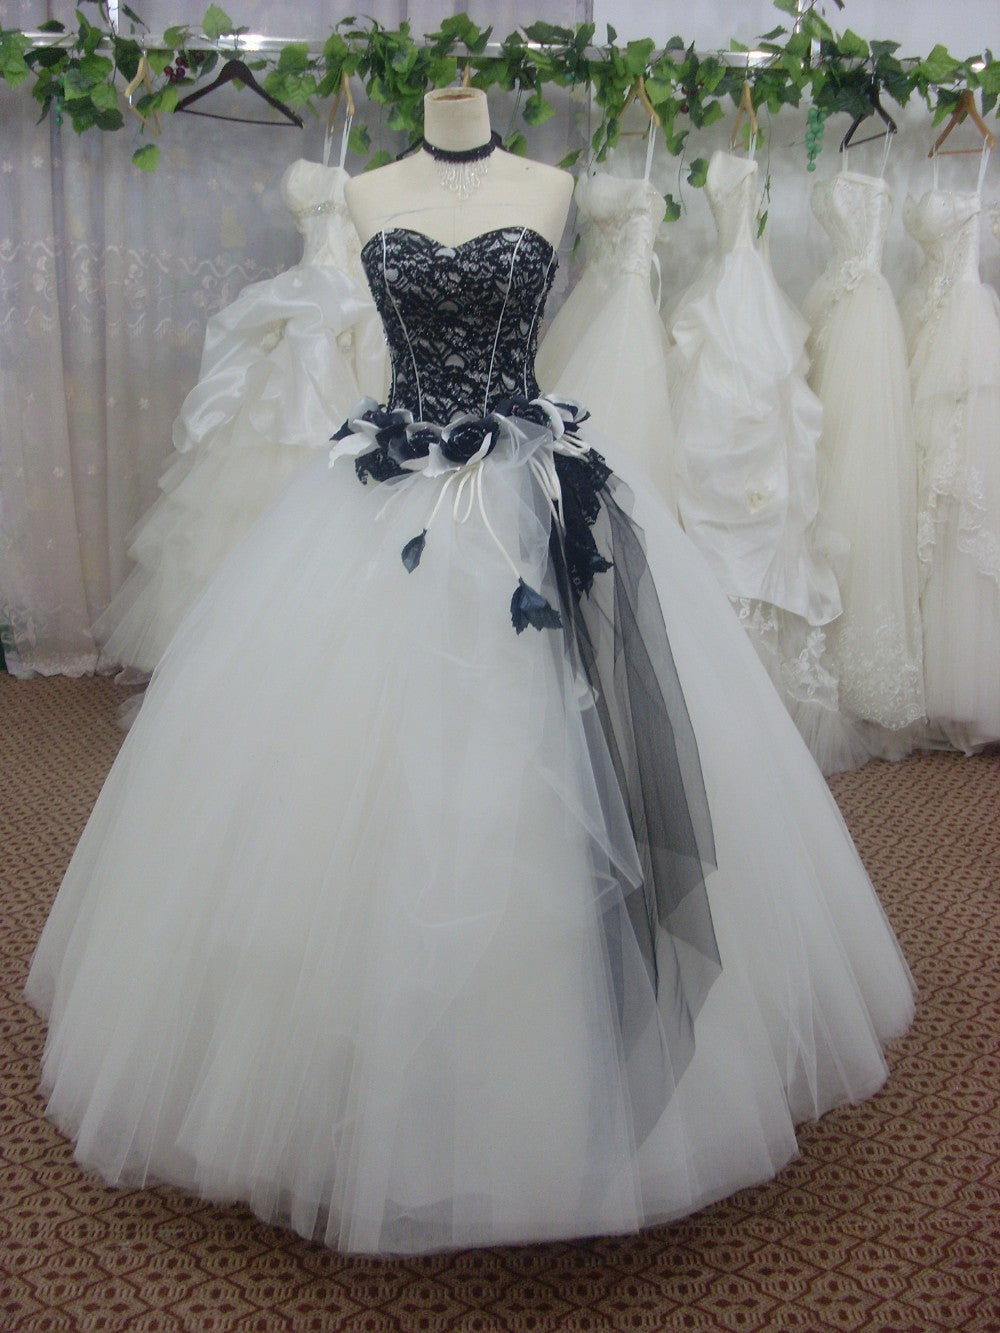 2016 Black and White Tulle Ball Gown Wedding Dress Bridal Gowns/Prom Dresses SL-3940